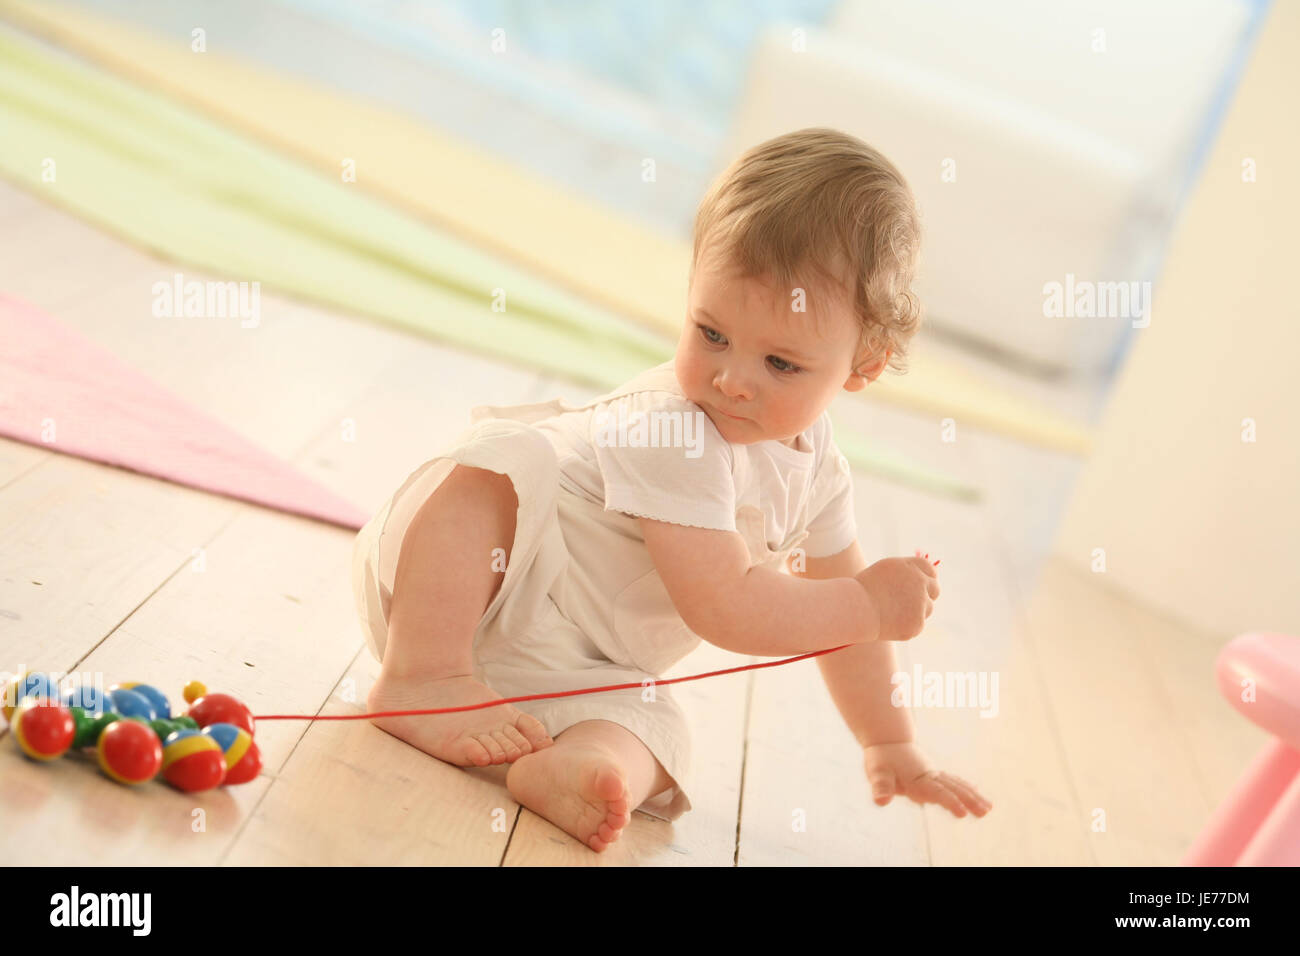 Baby, 11 months, wooden toys, caterpillar, play, Nachziehtier, dresses, blond, learn, little locks, discoveries, - Stock Image